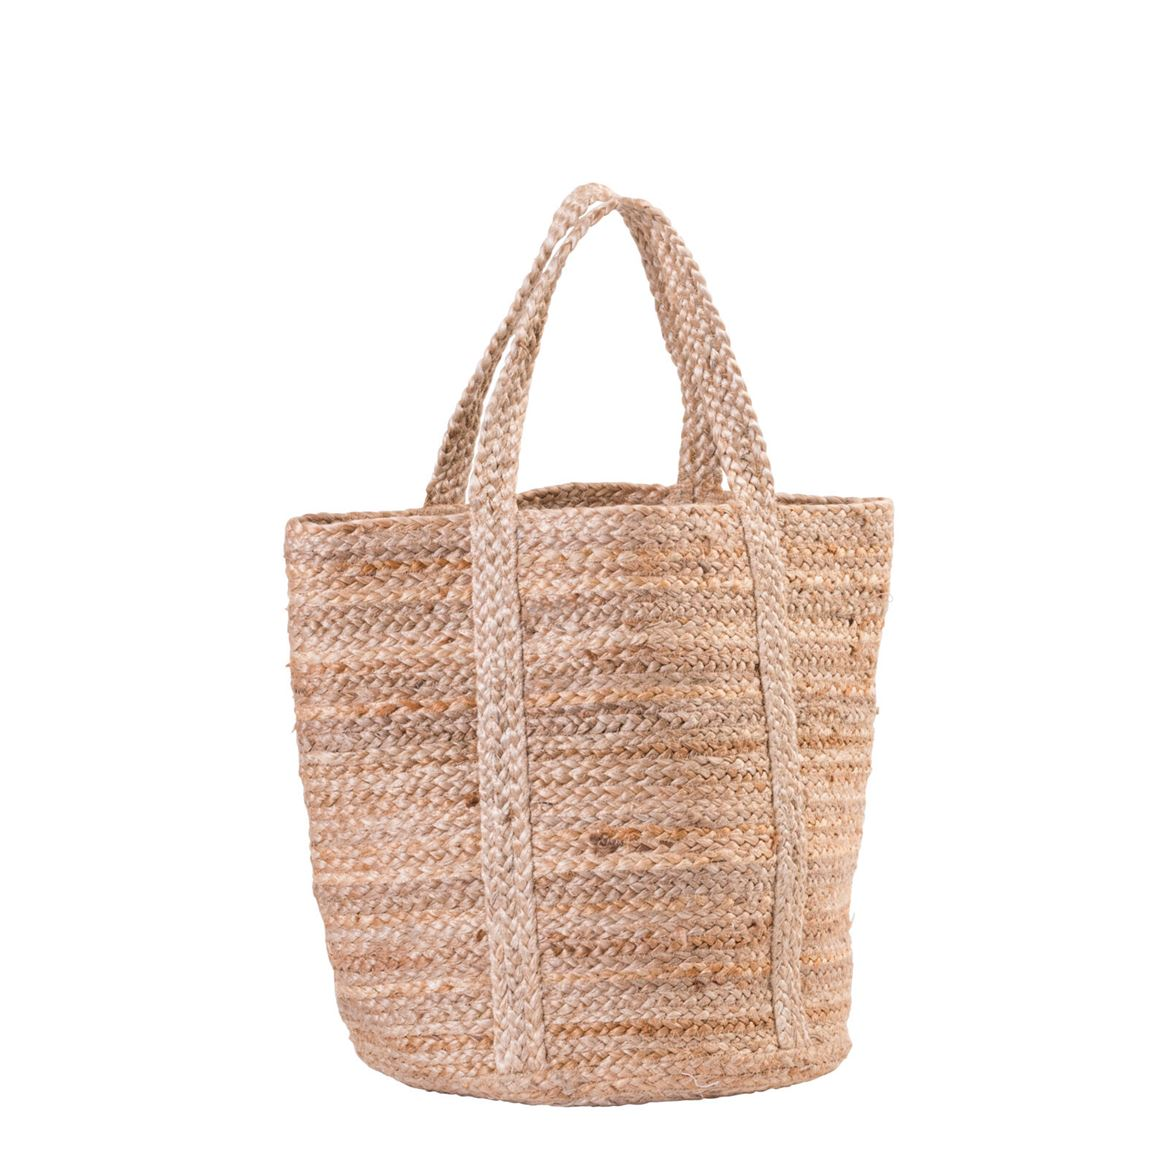 BRAID Saco natural H 52 x W 40 cm_braid-saco-natural-h-52-x-w-40-cm